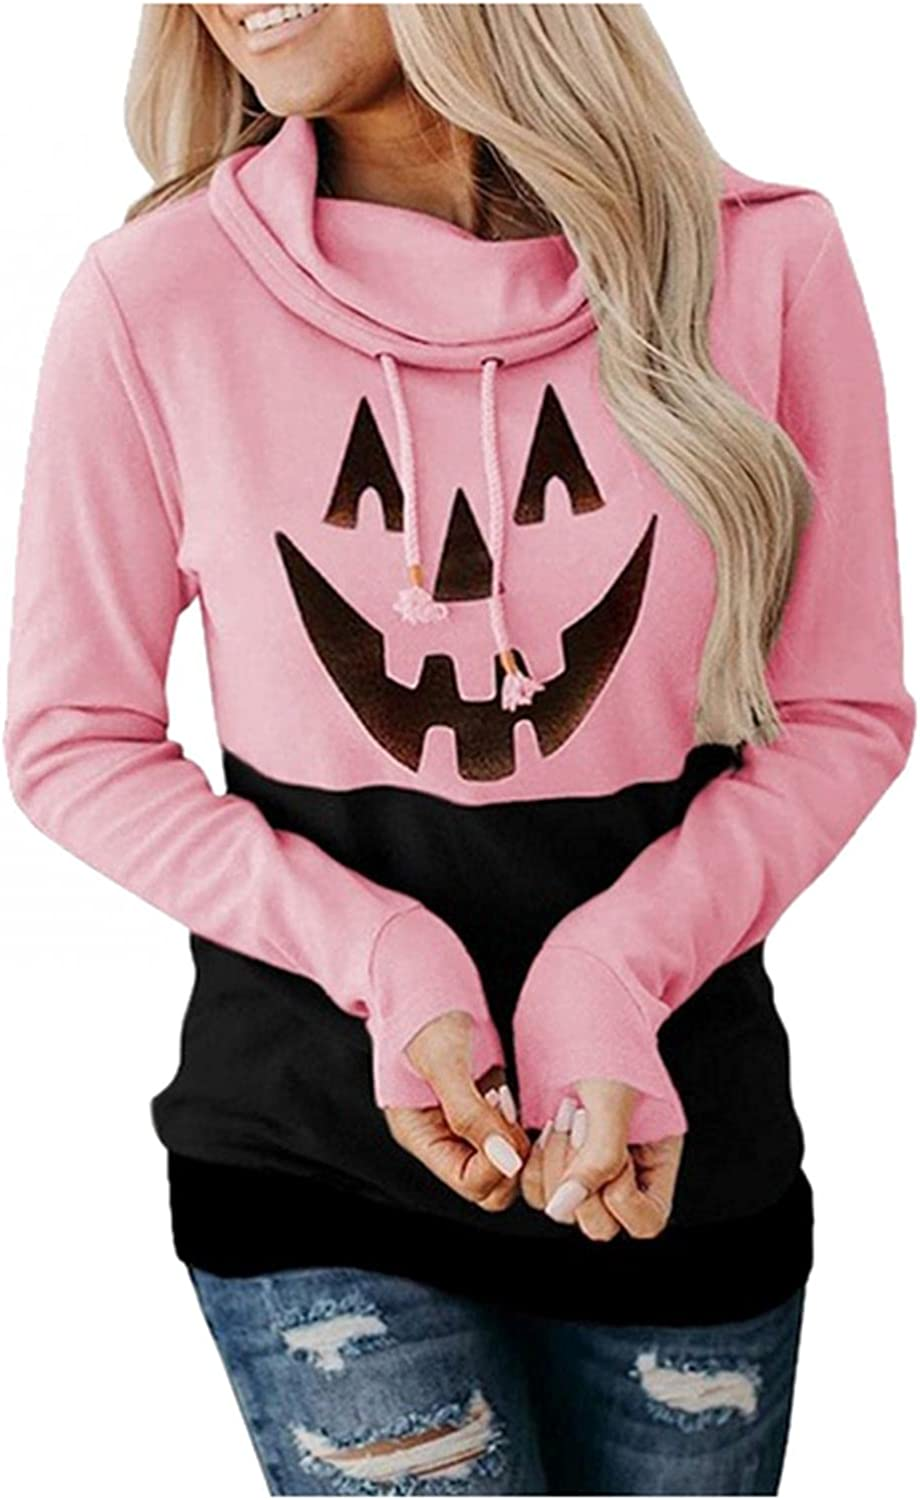 Halloween Hoodies for Women Women's Graphic Loose Long Sleeve Fall Tops Cute Sweatshirts Round Neck Lace